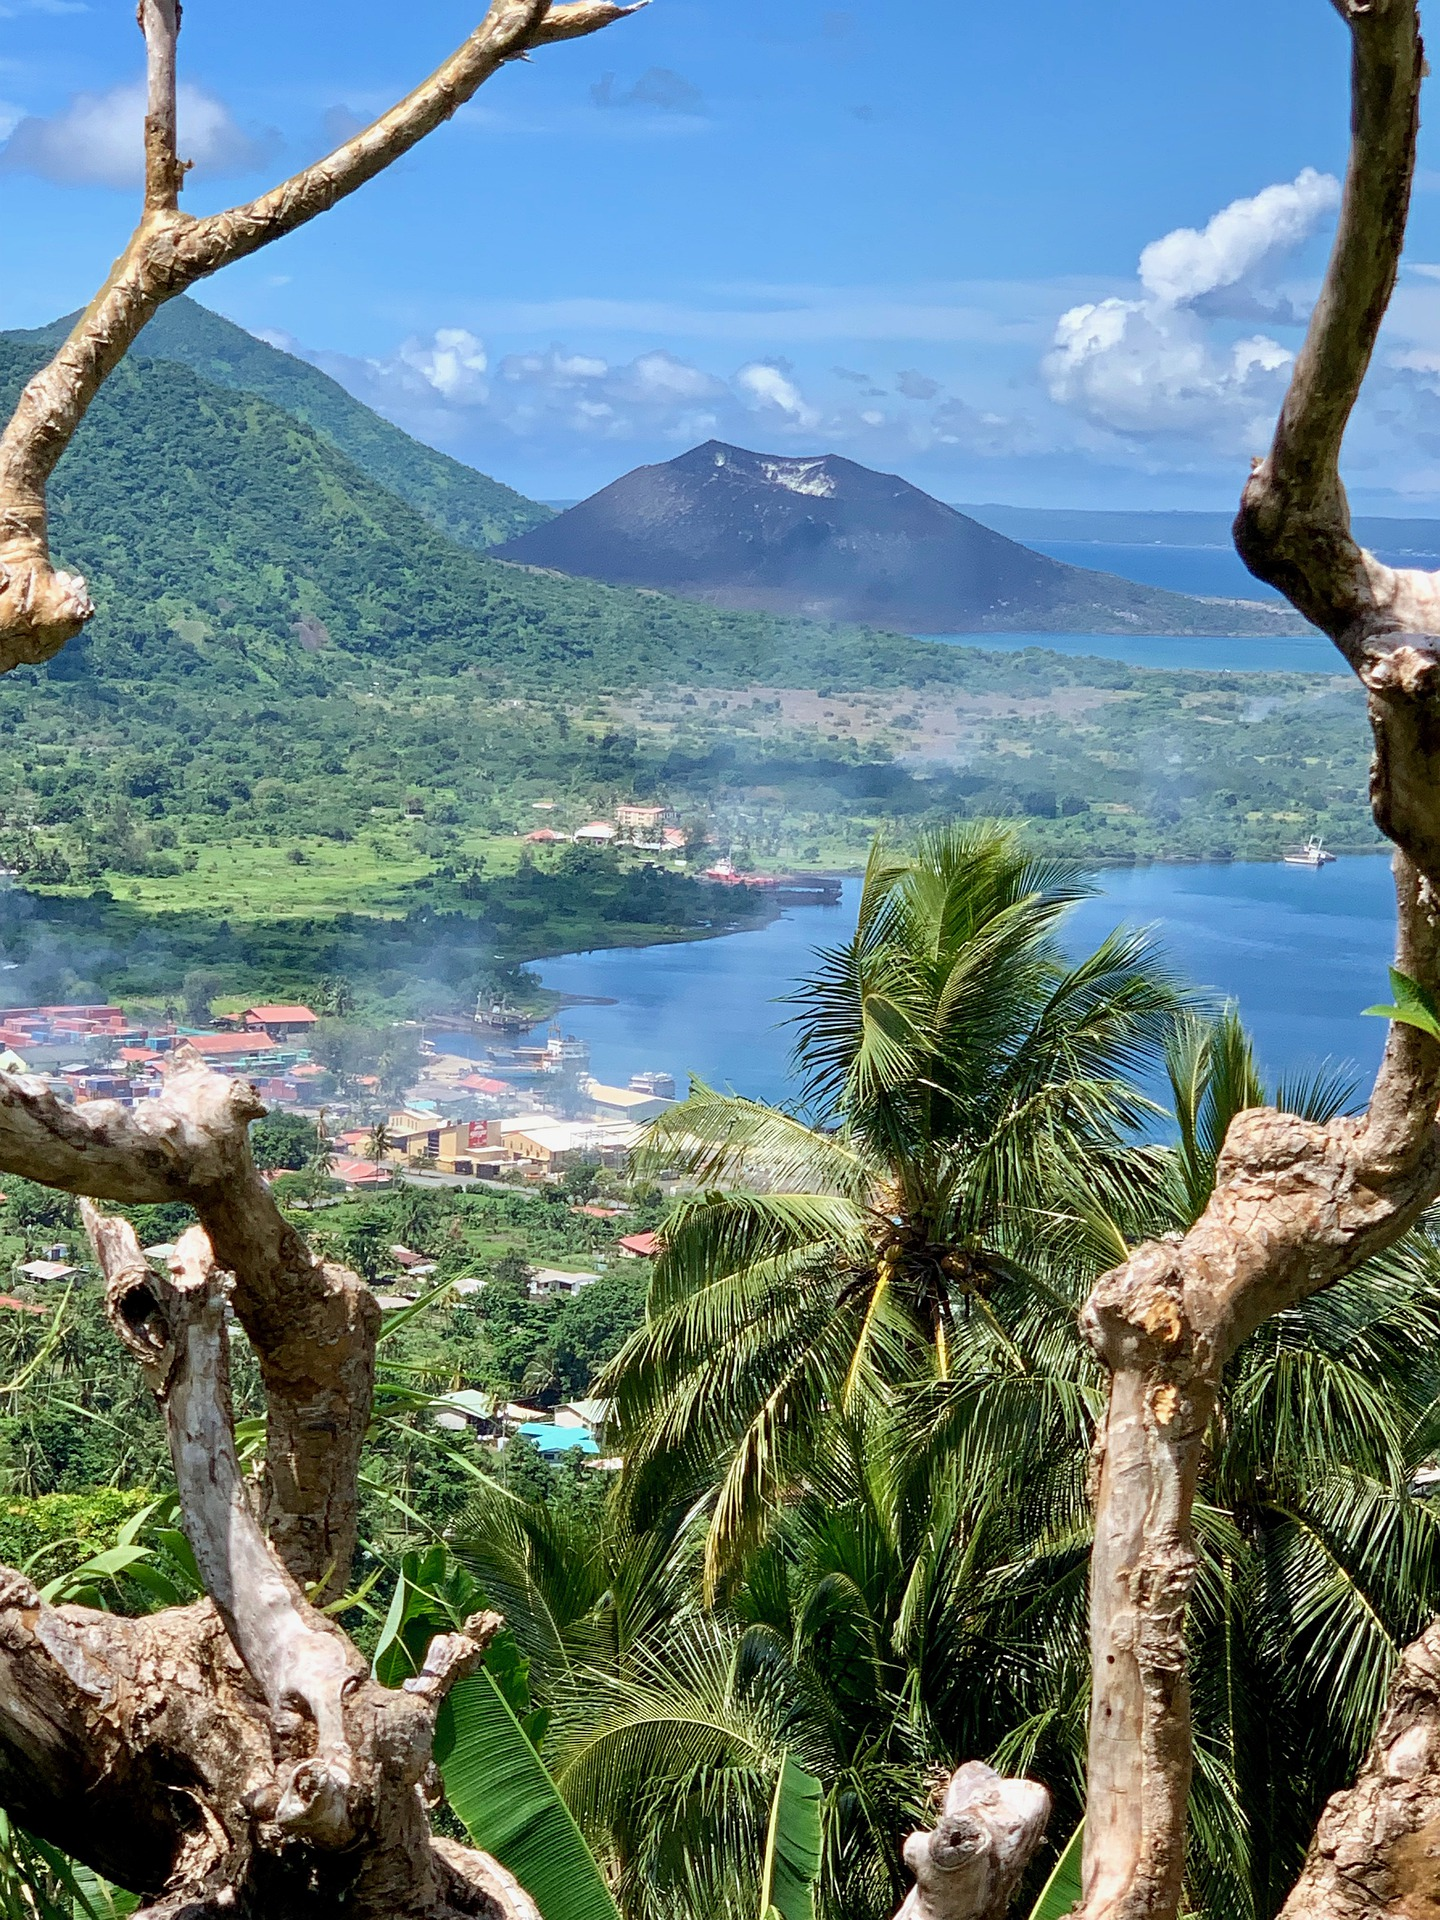 Picture of Rabaul: a blue lake surrounded by hills and palm trees and a village.